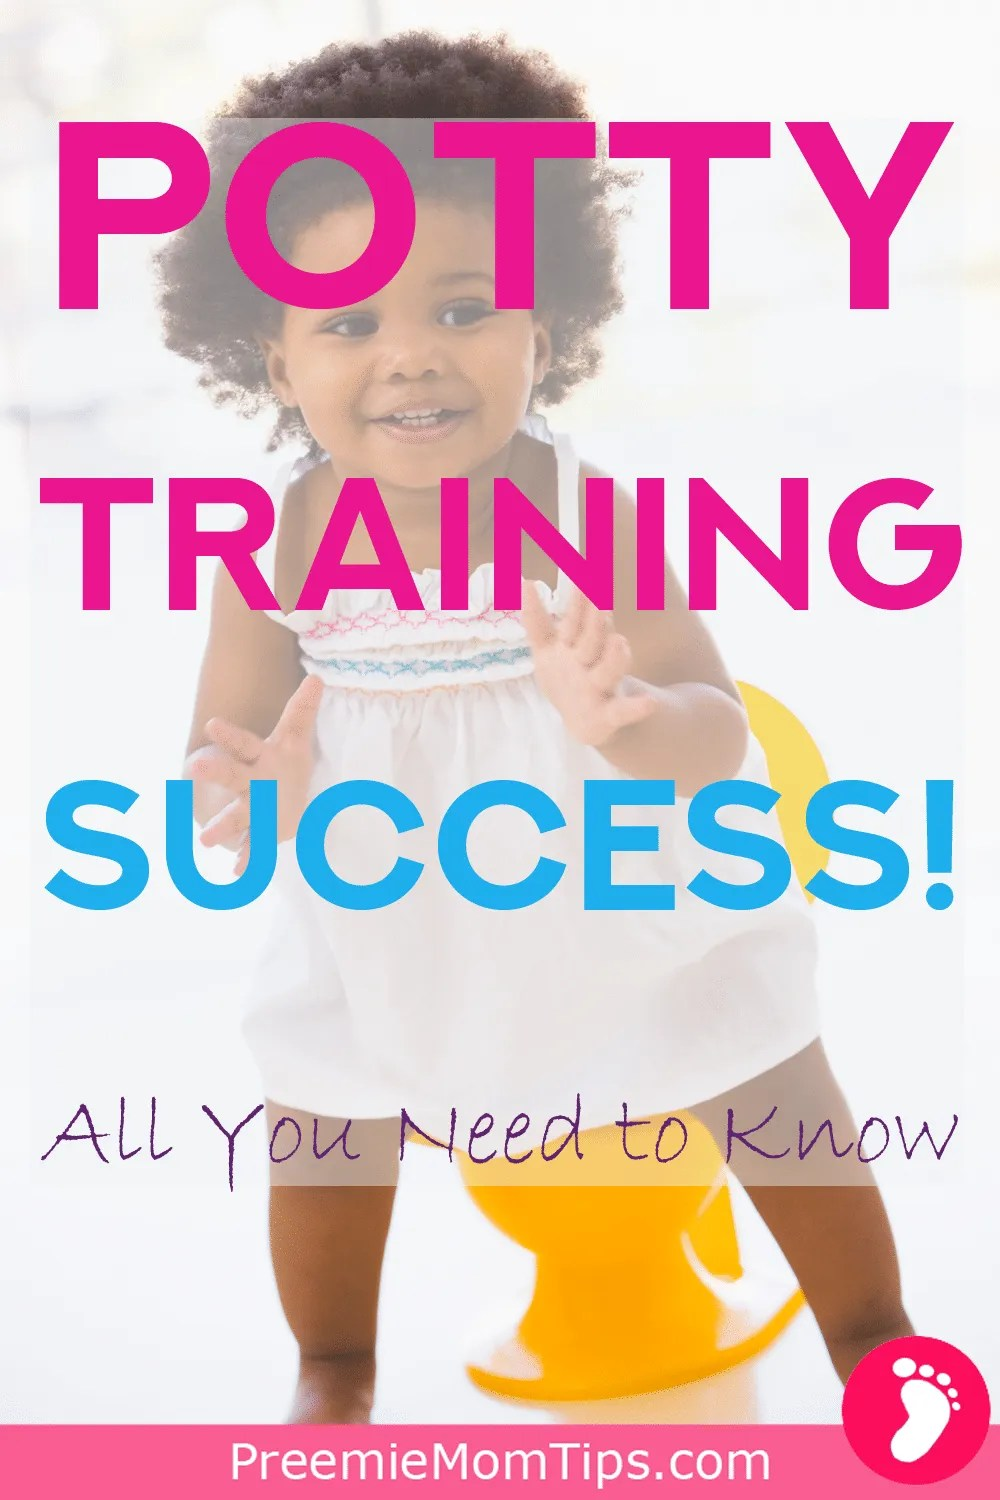 Check out this comprehensive and practical guide on potty training. How to know your toddler is ready for potty training, what mistakes to avoid as a new mom, what worked for us, and what didn't! Learn it all!